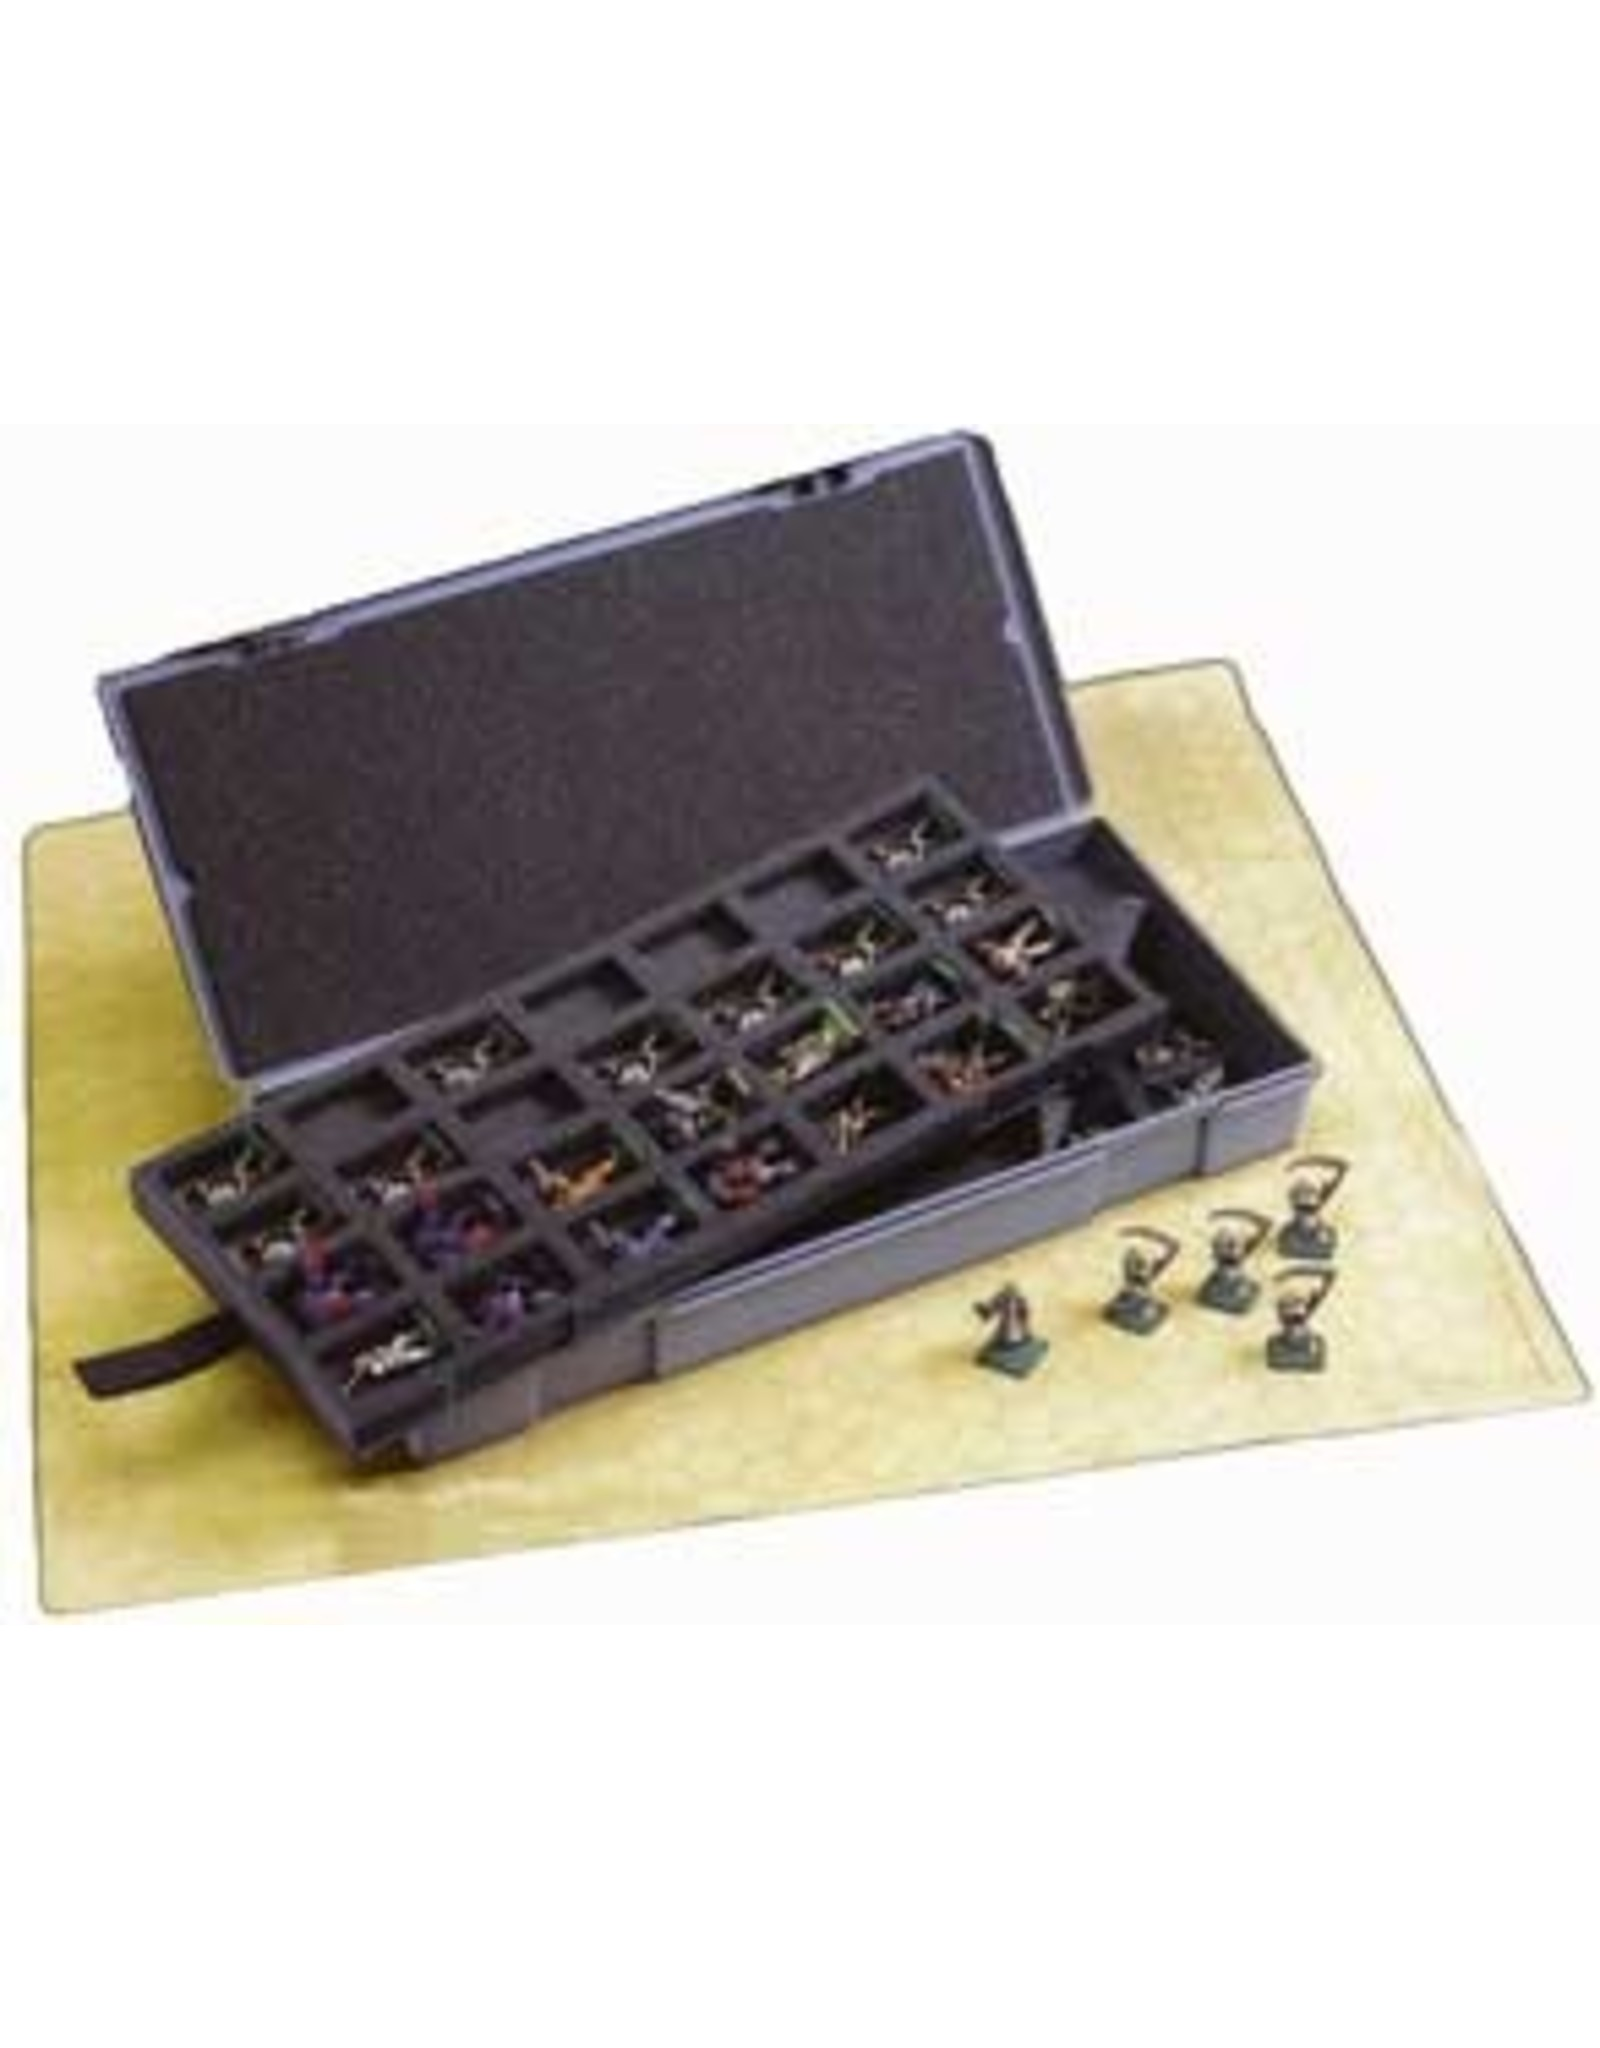 Chessex Figure Storage Box 56 figures